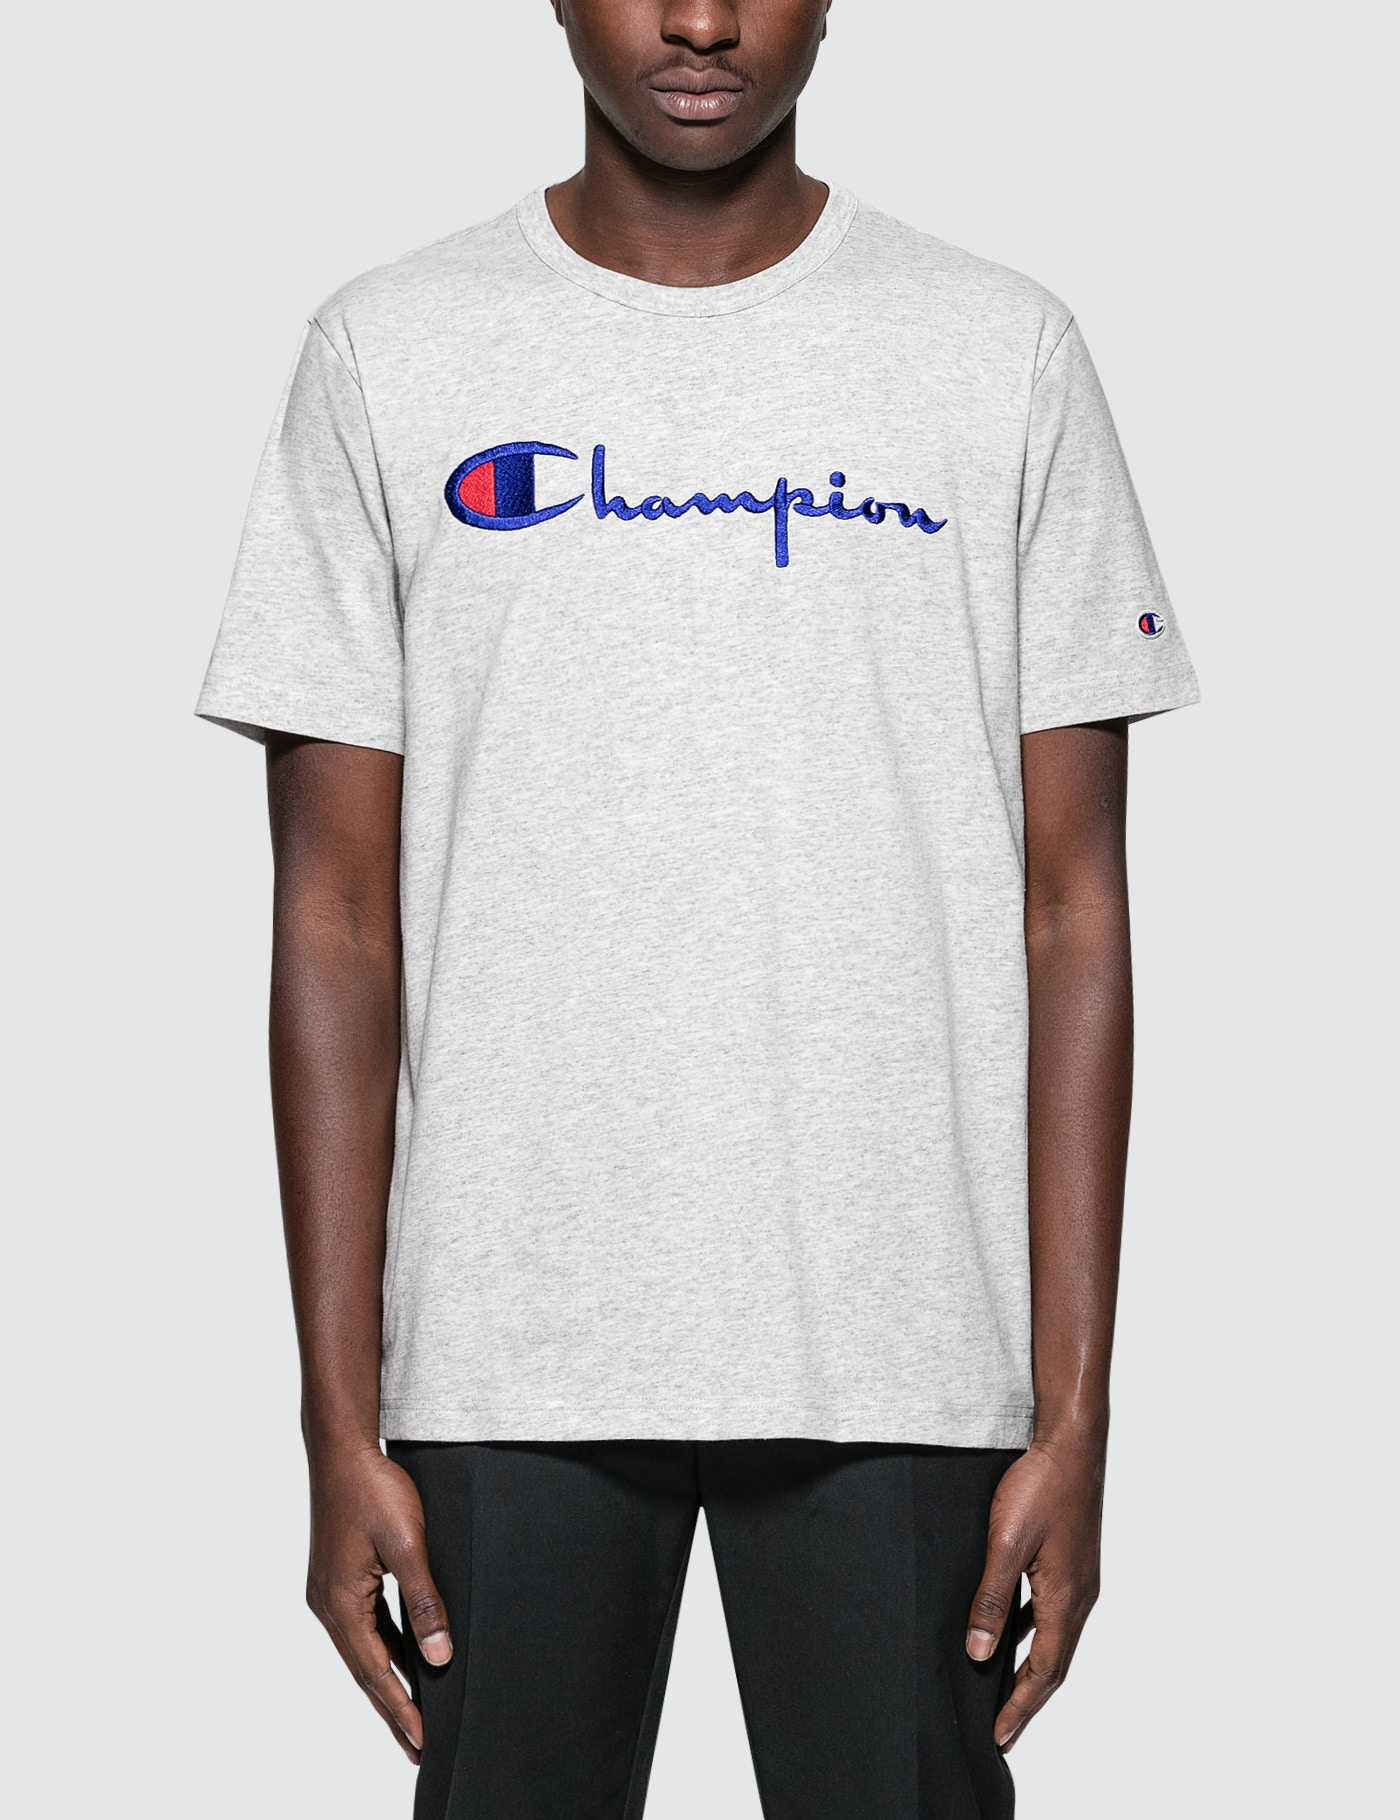 7583a0e7e2f3 Buy Original Champion Reverse Weave Script Logo S S T-Shirt at ...